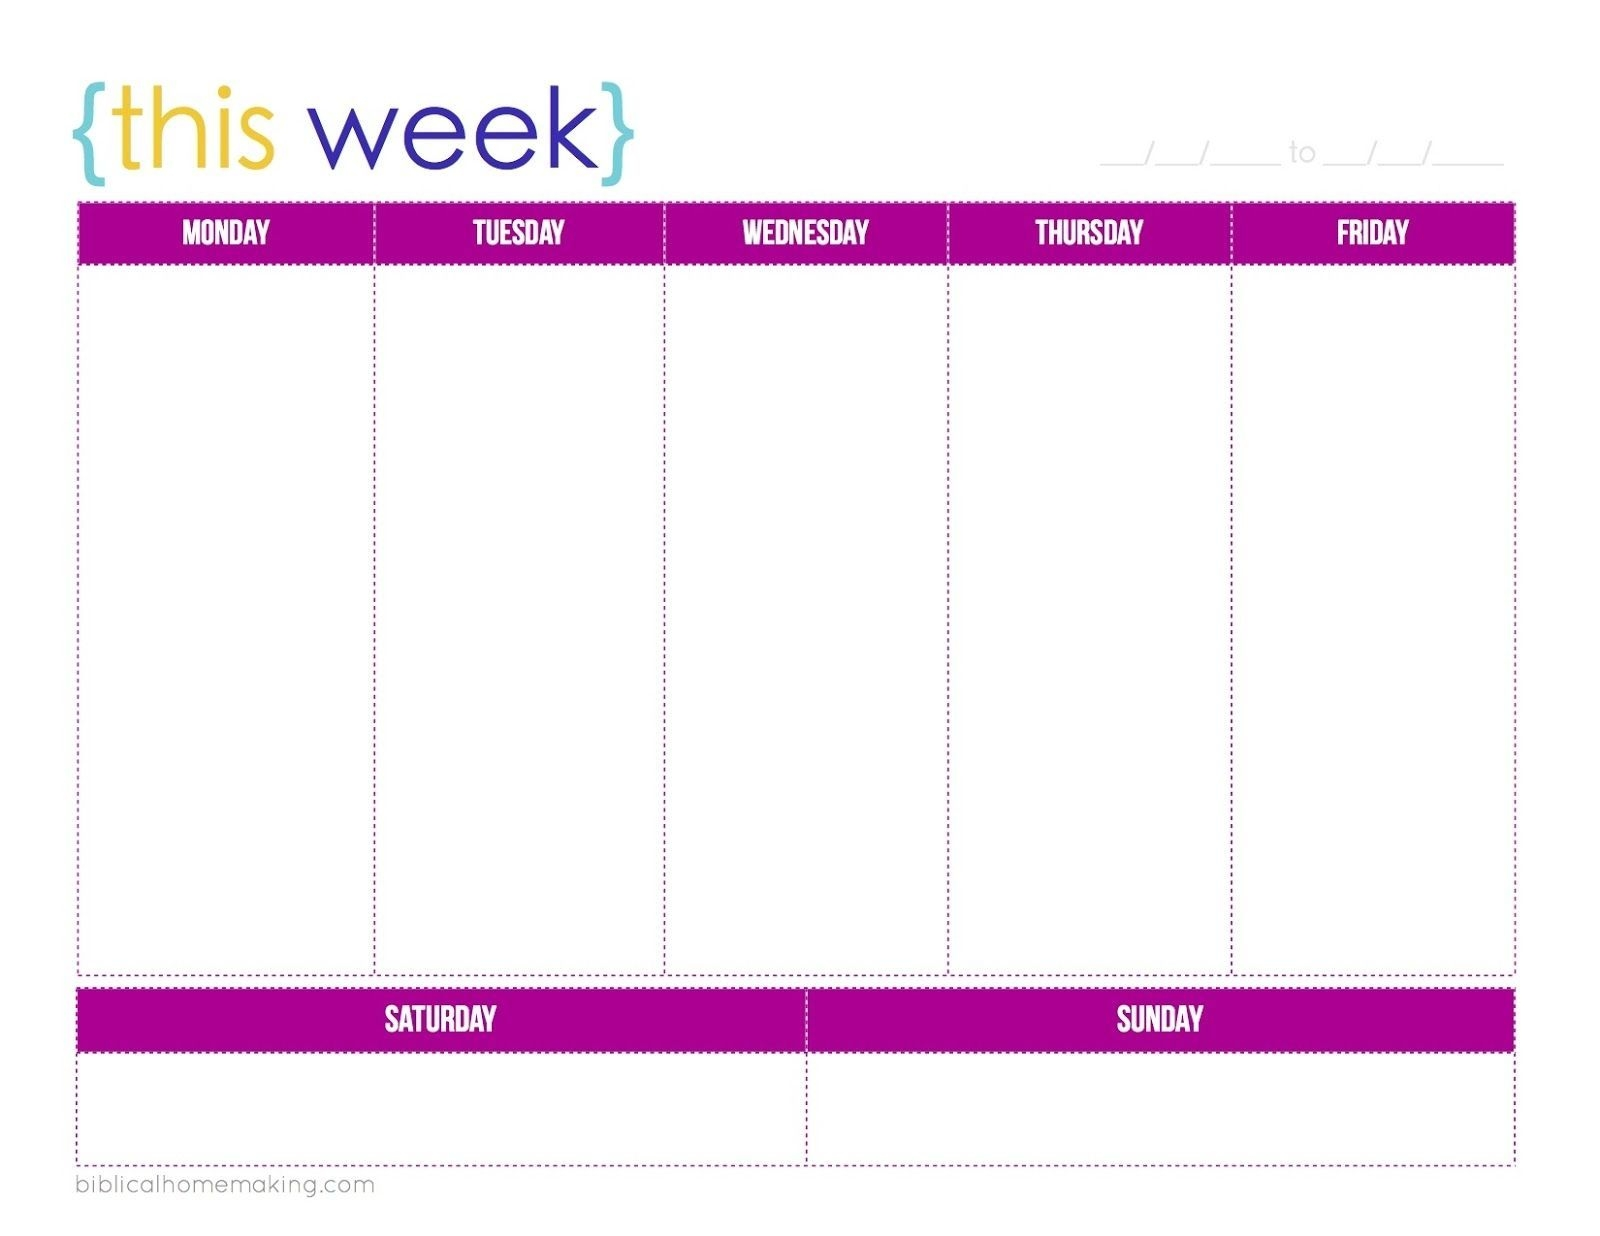 This Week A Free Weekly Planner Printable Biblical